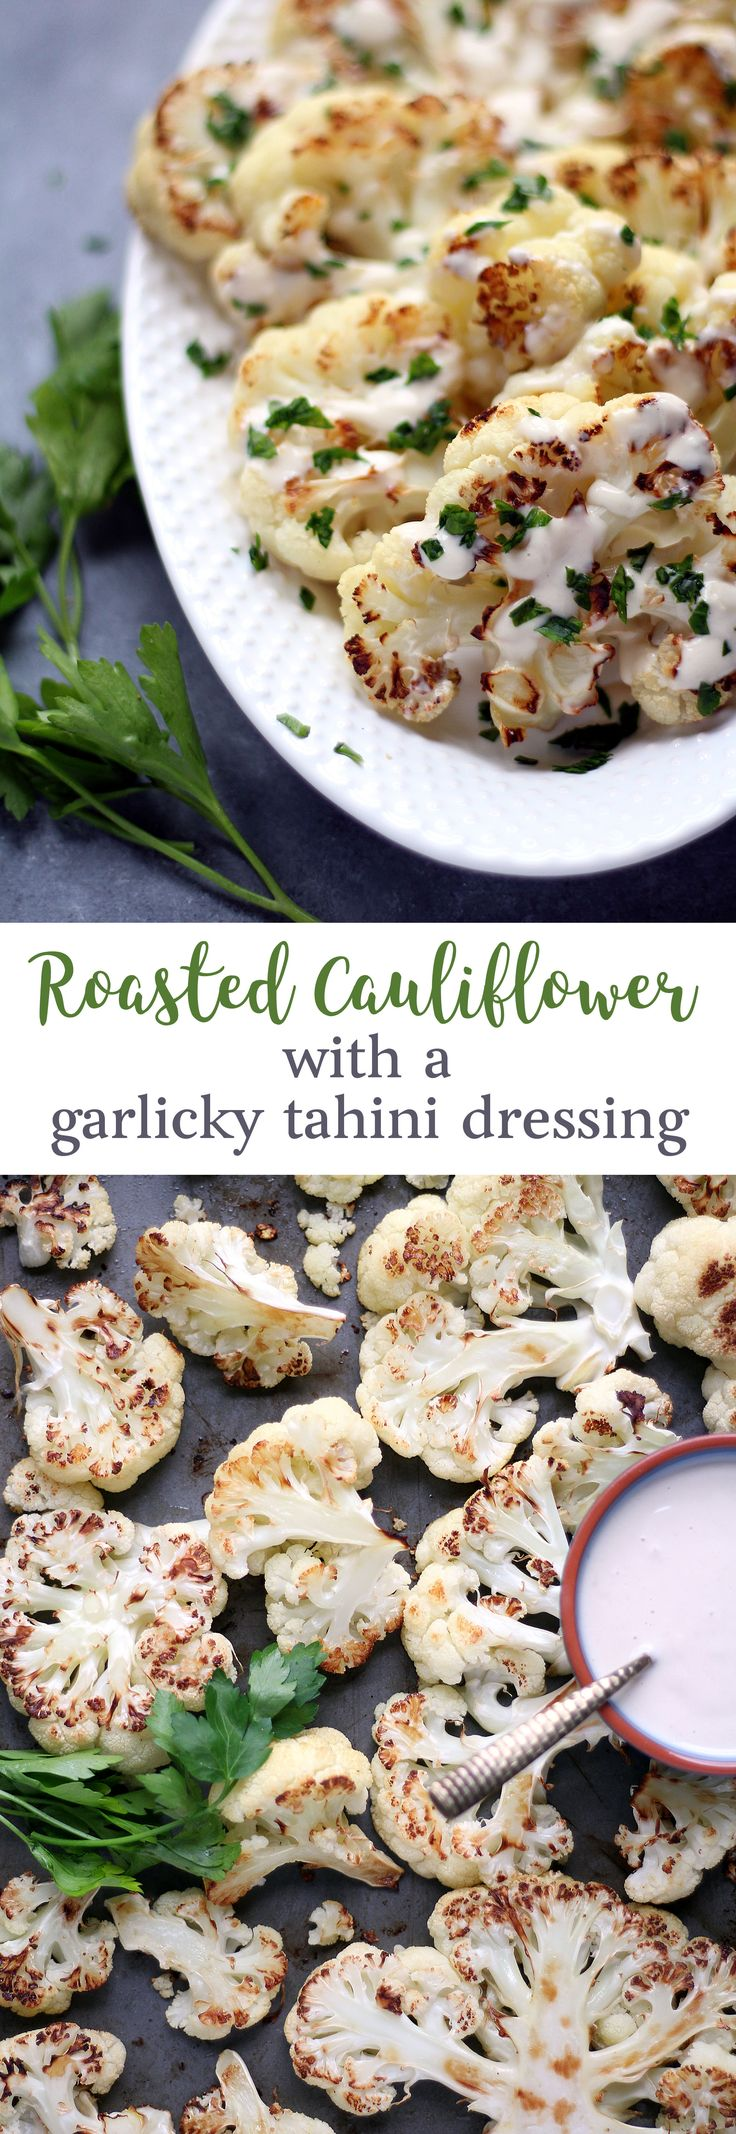 Roasted Caulliflower with a Lemon Garlic Tahini Sauce